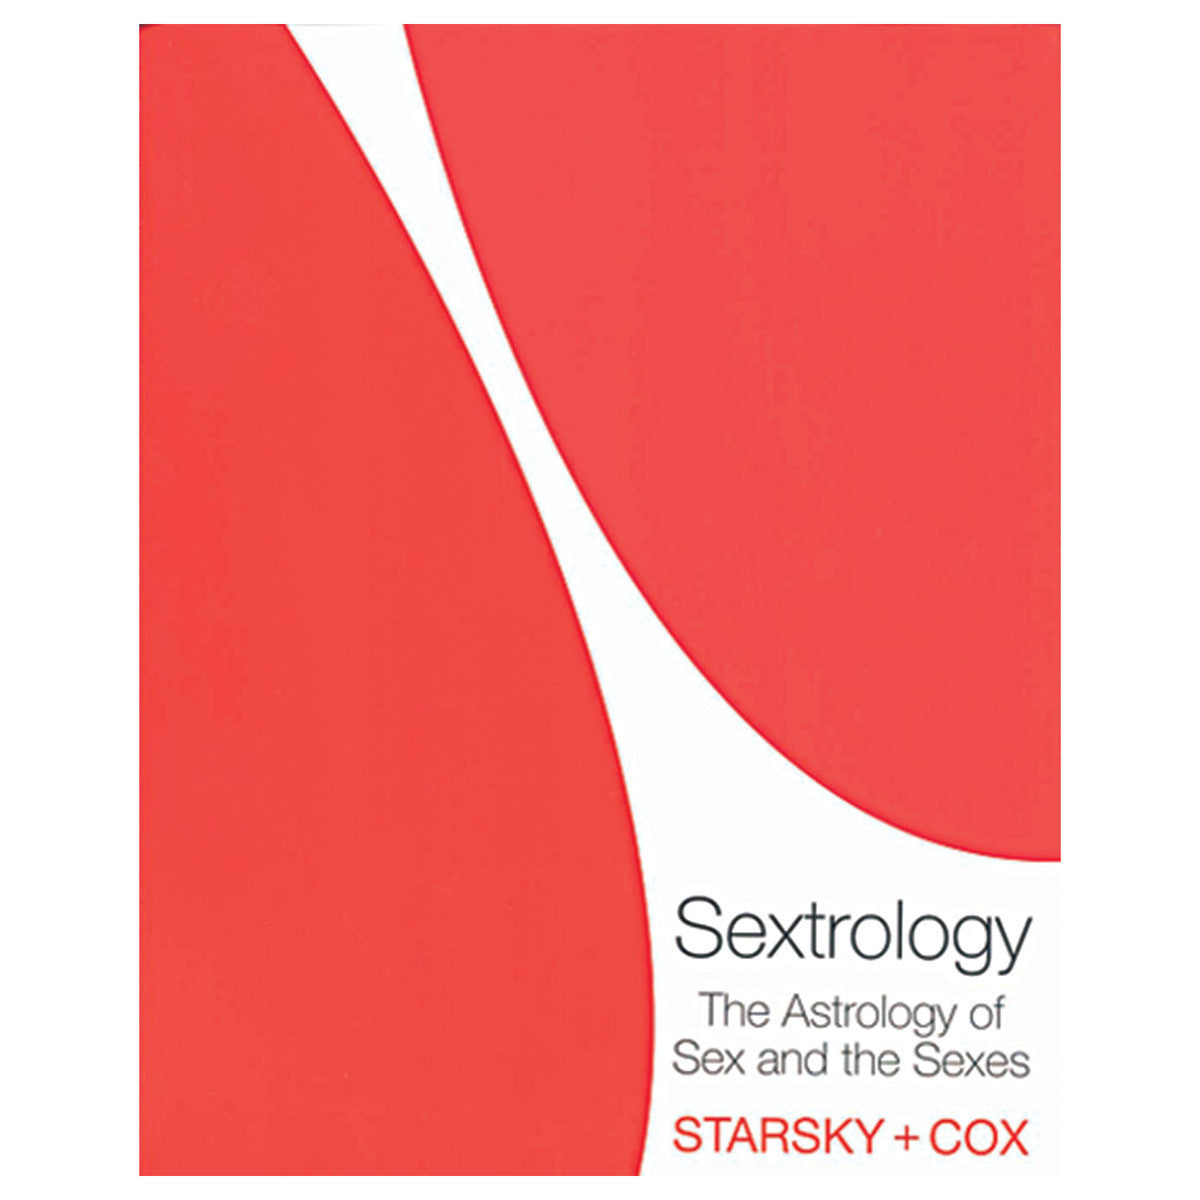 Sextrology: Astrology of Sex and the Sexes